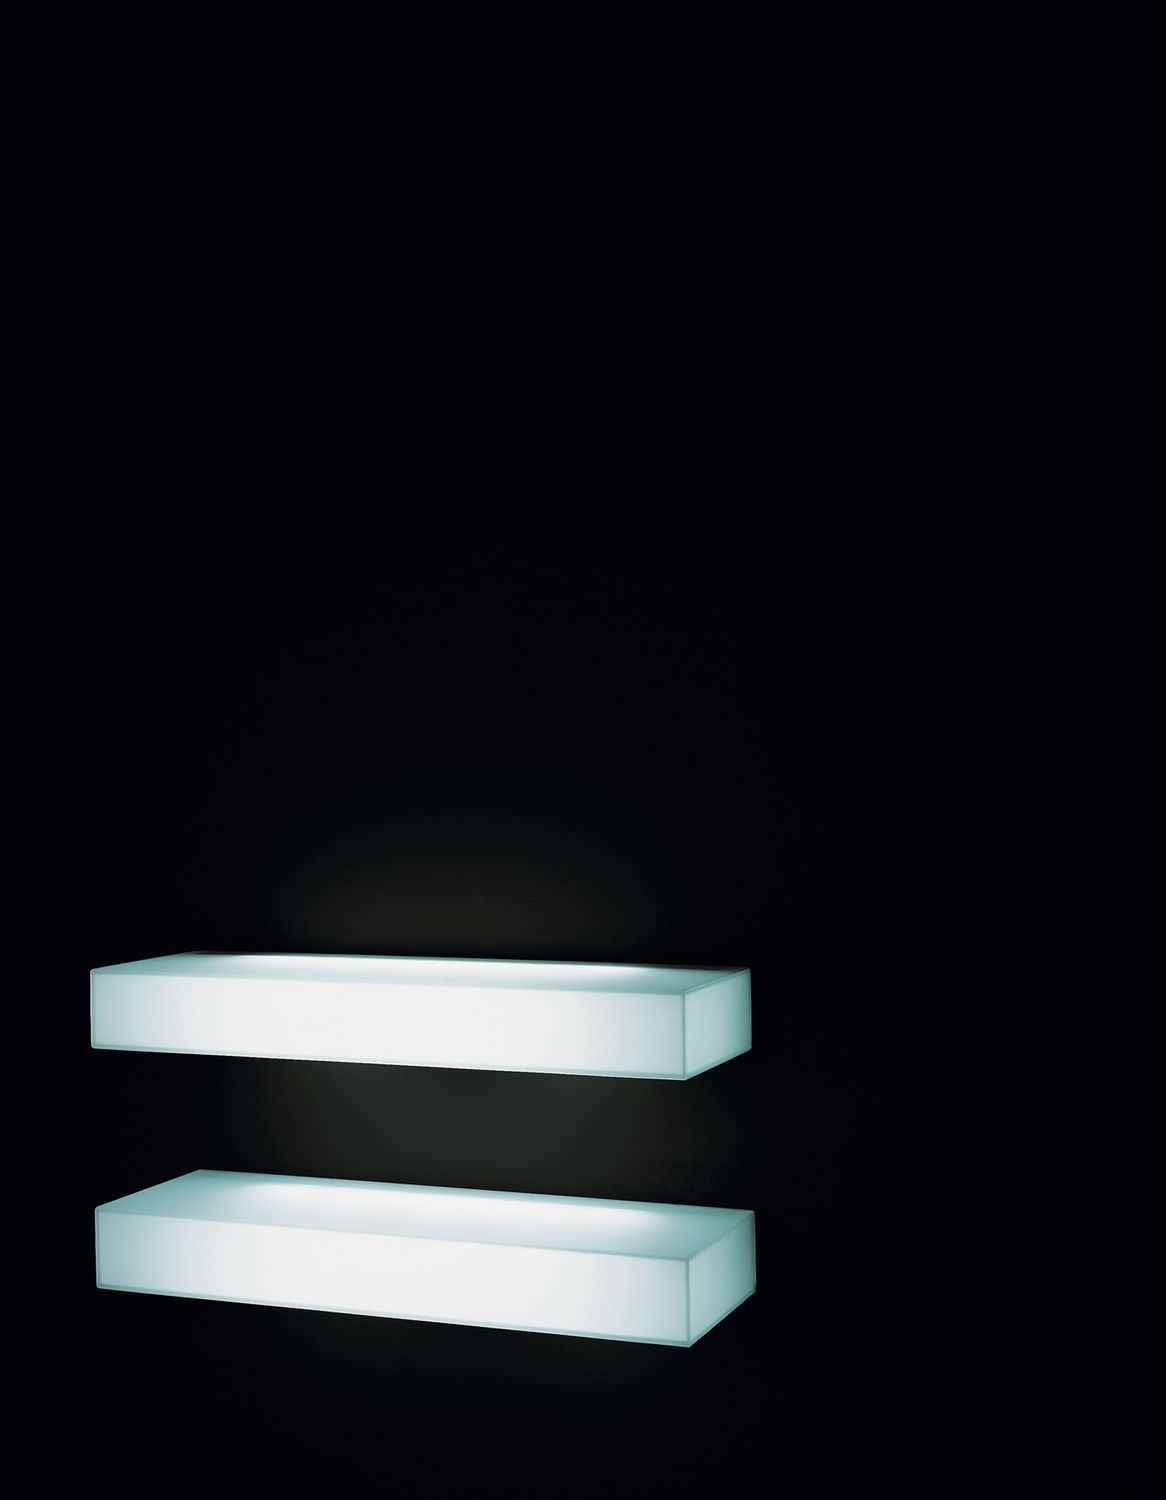 Wall Mounted Shelf Contemporary Glass Illuminated Light For Illuminated Glass Shelves (Image 13 of 15)